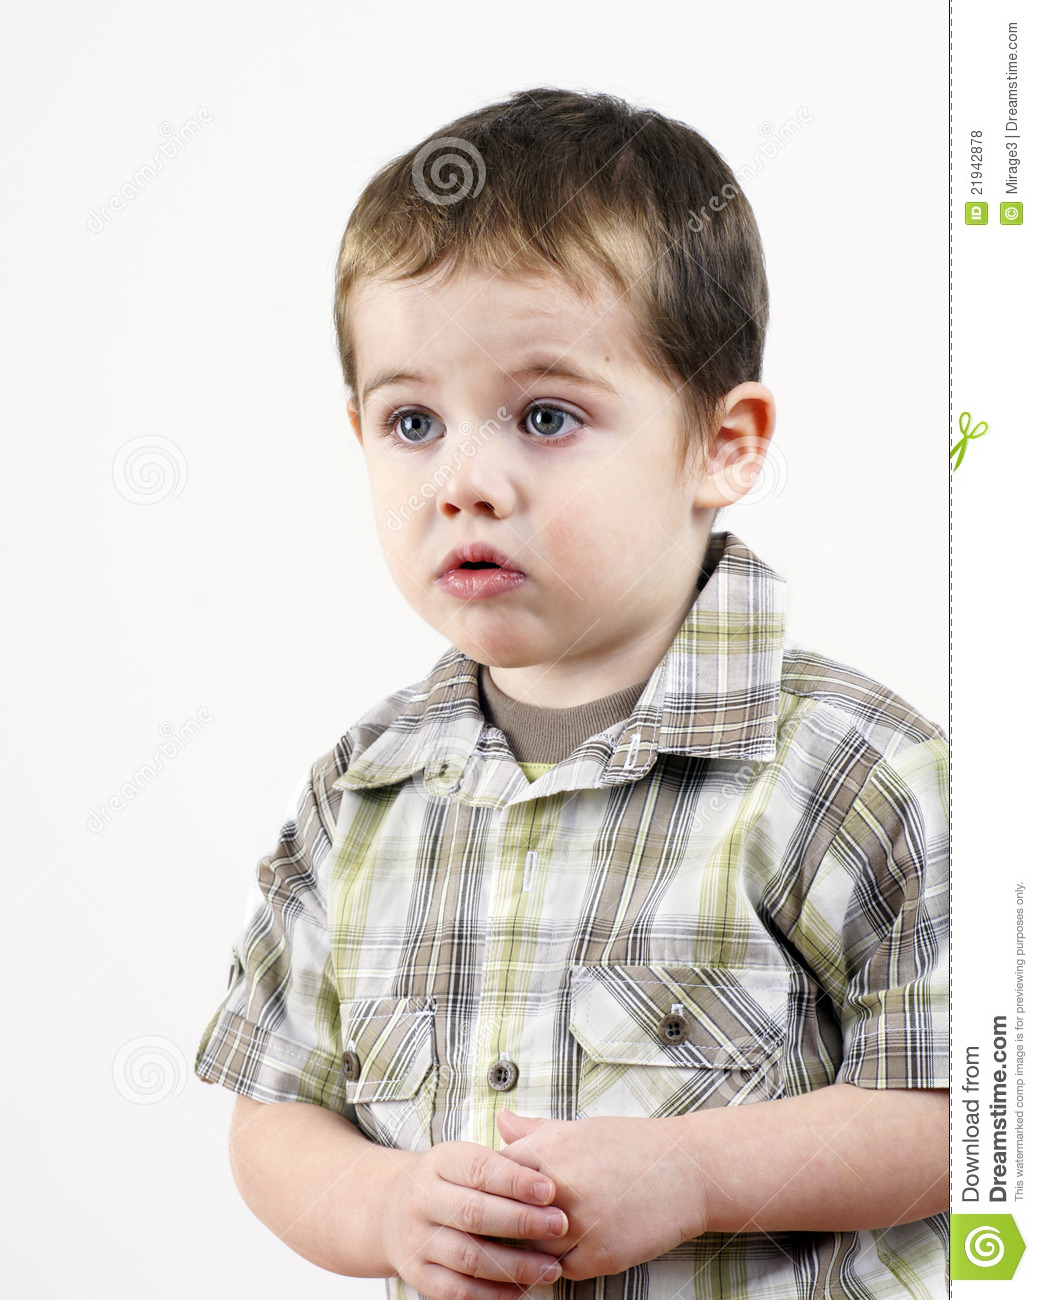 little boy in trouble royalty free stock photos image 21942878